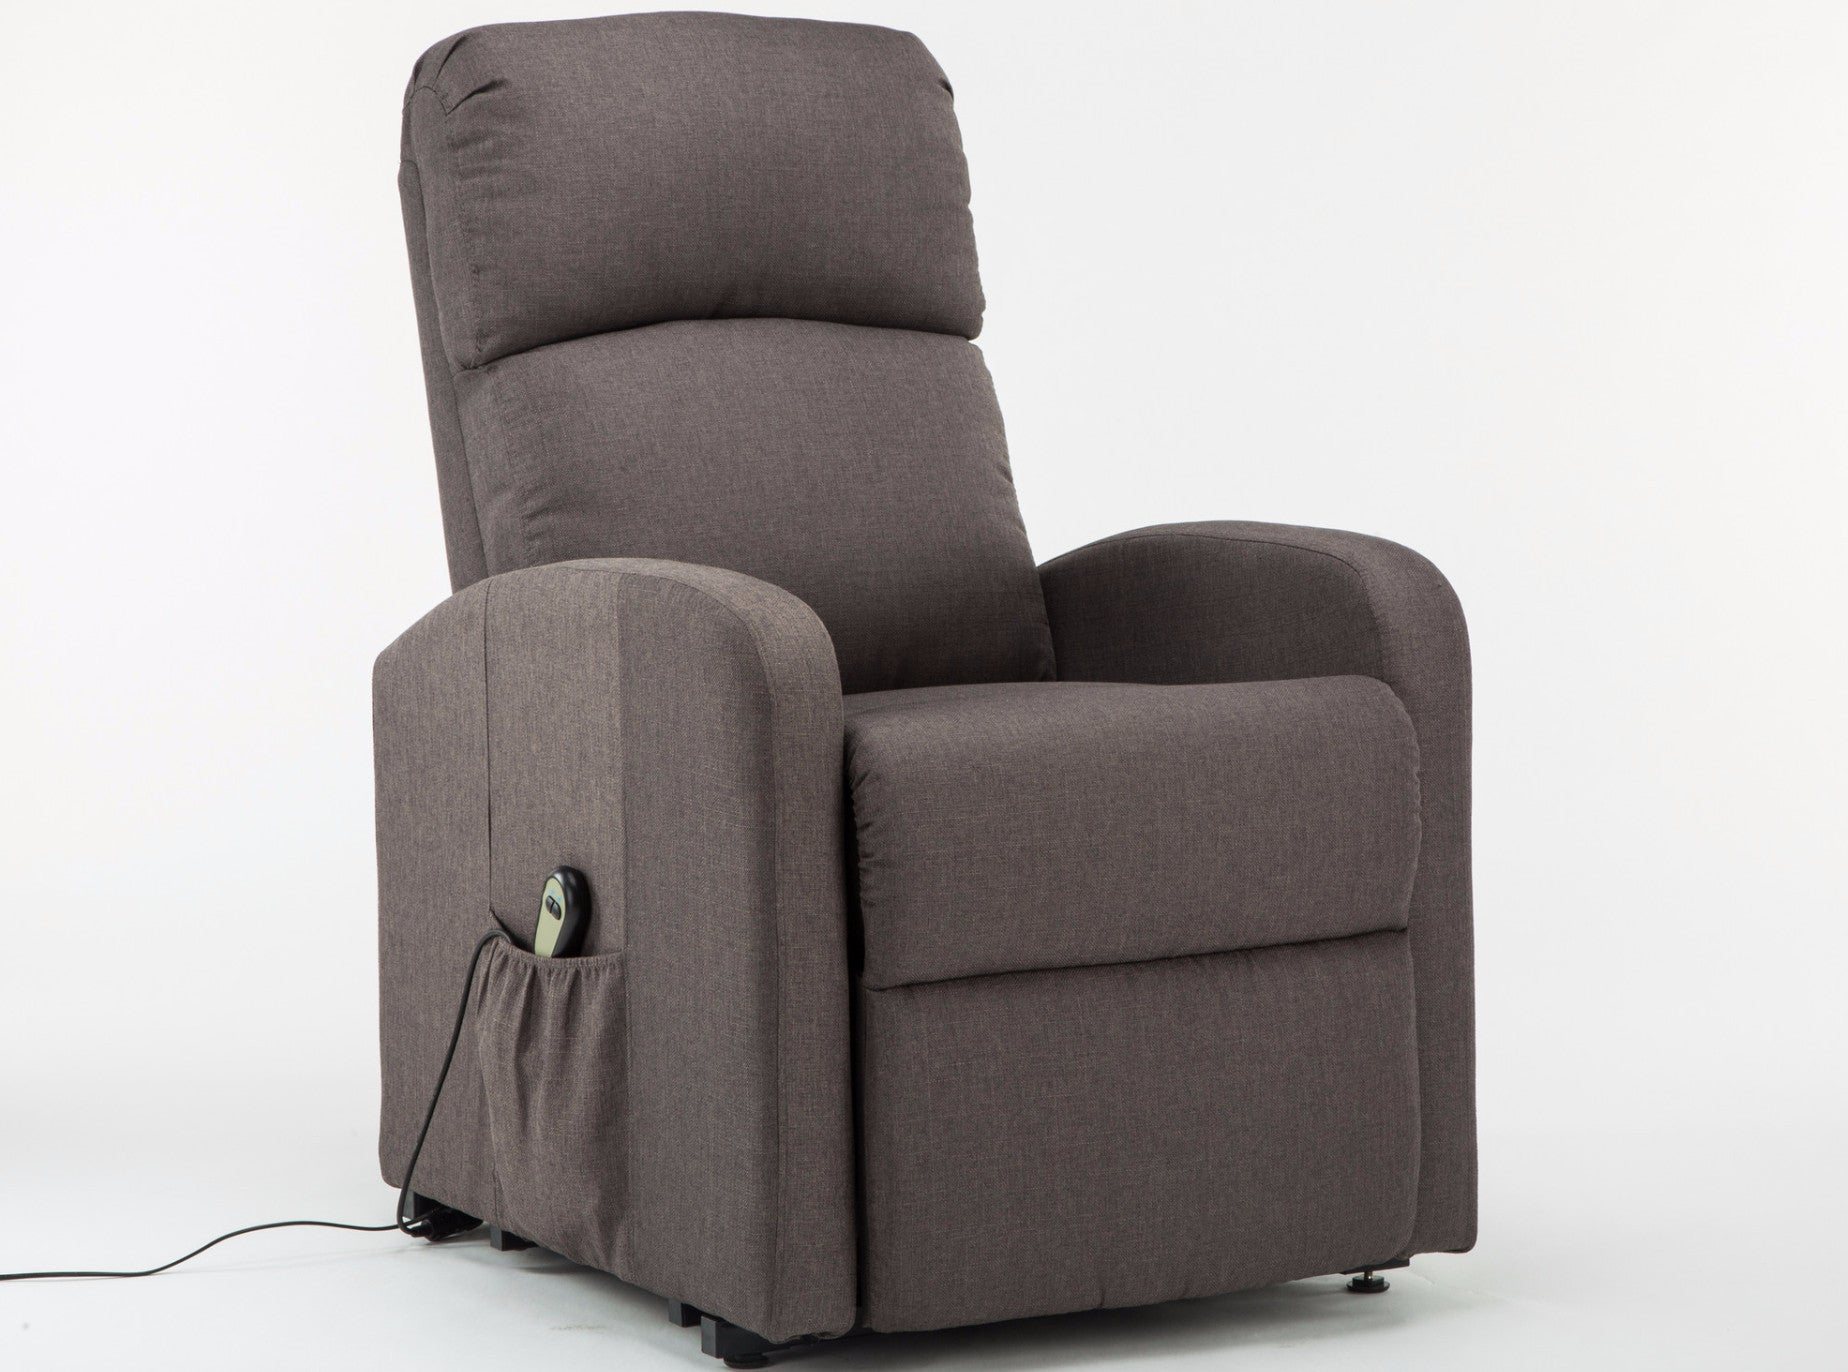 Lift Power Lift Recliner Fabric Chair : lift reclining chairs - islam-shia.org